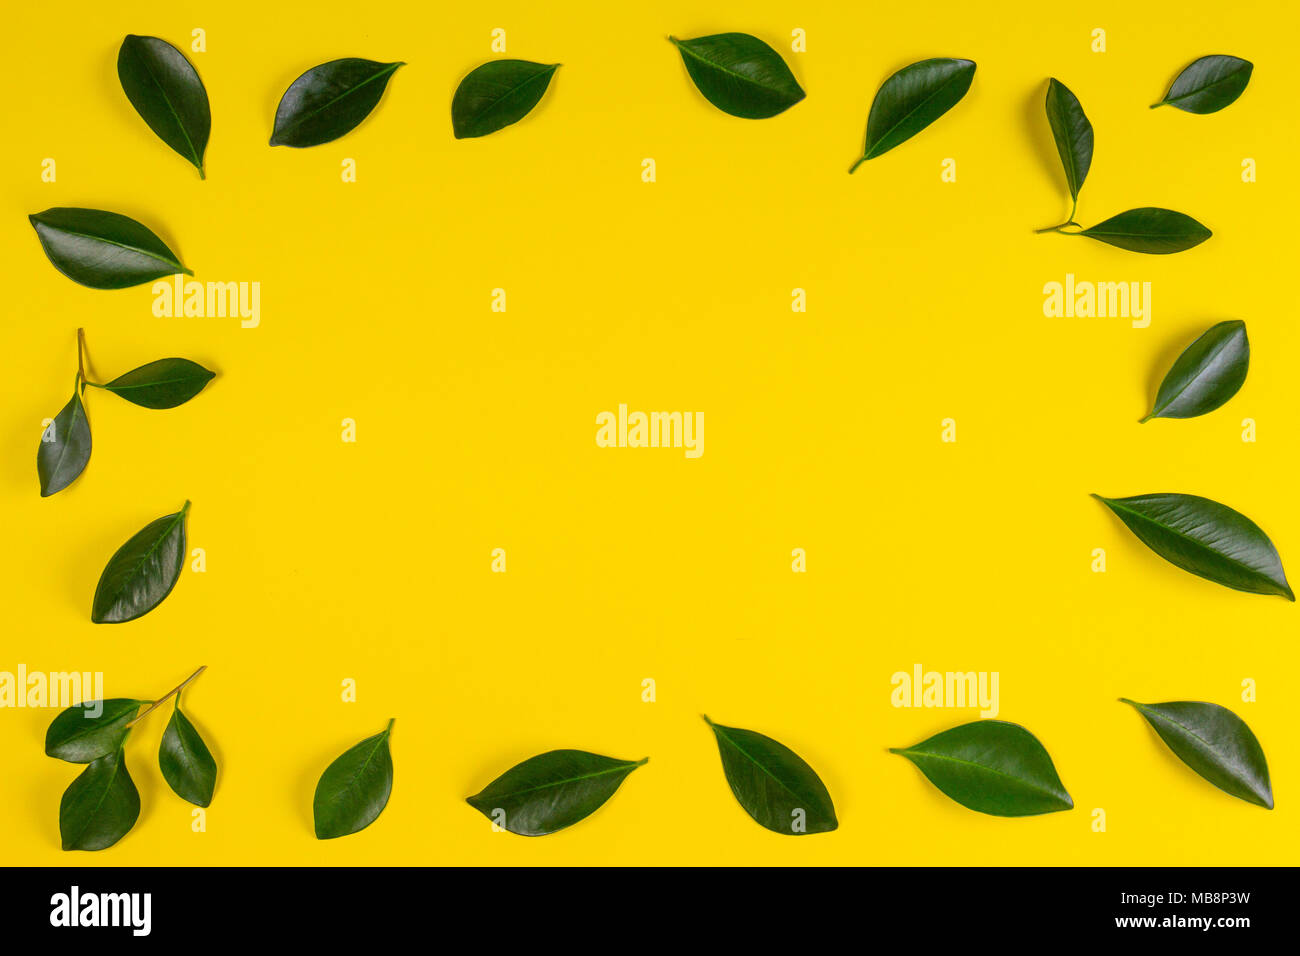 Green tree leaves frame with yellow background - Stock Image